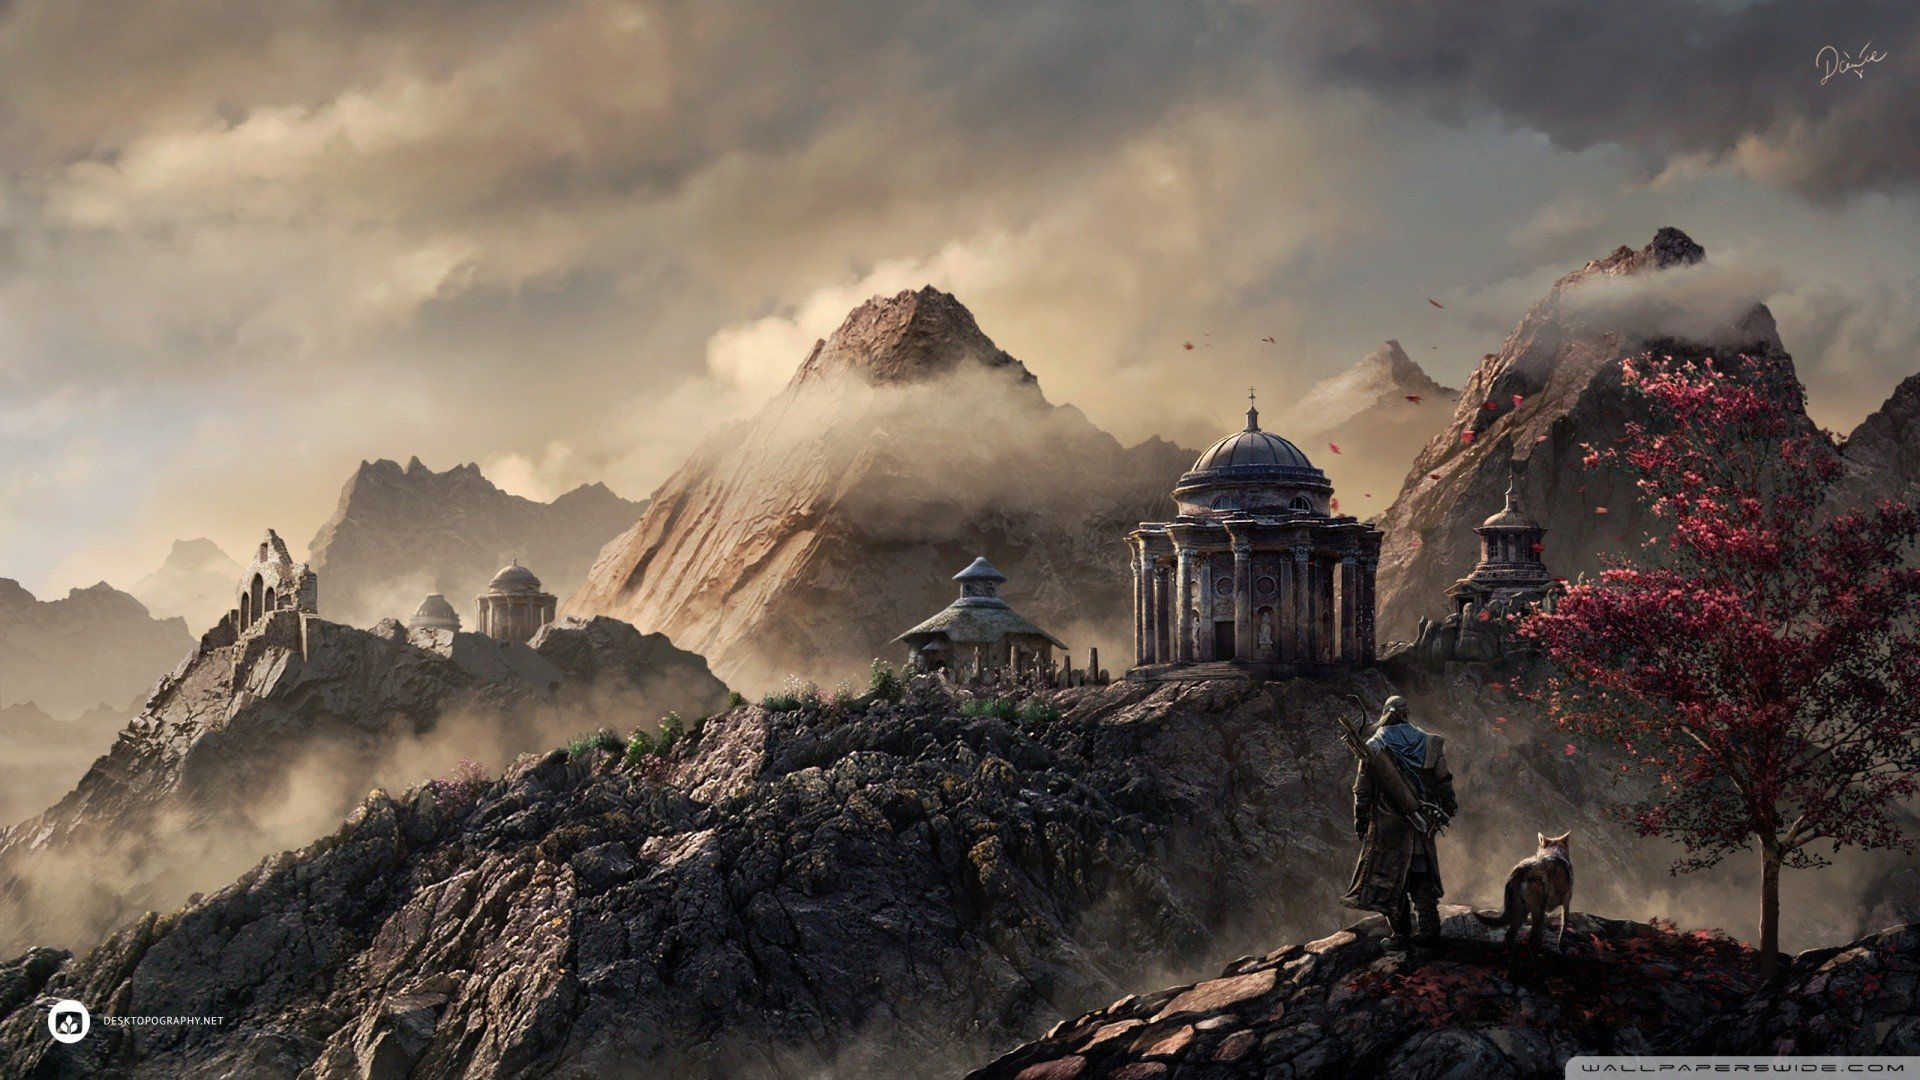 landscapes-fantasy-art-mountains-trees-wolves-archer-temple.jpg